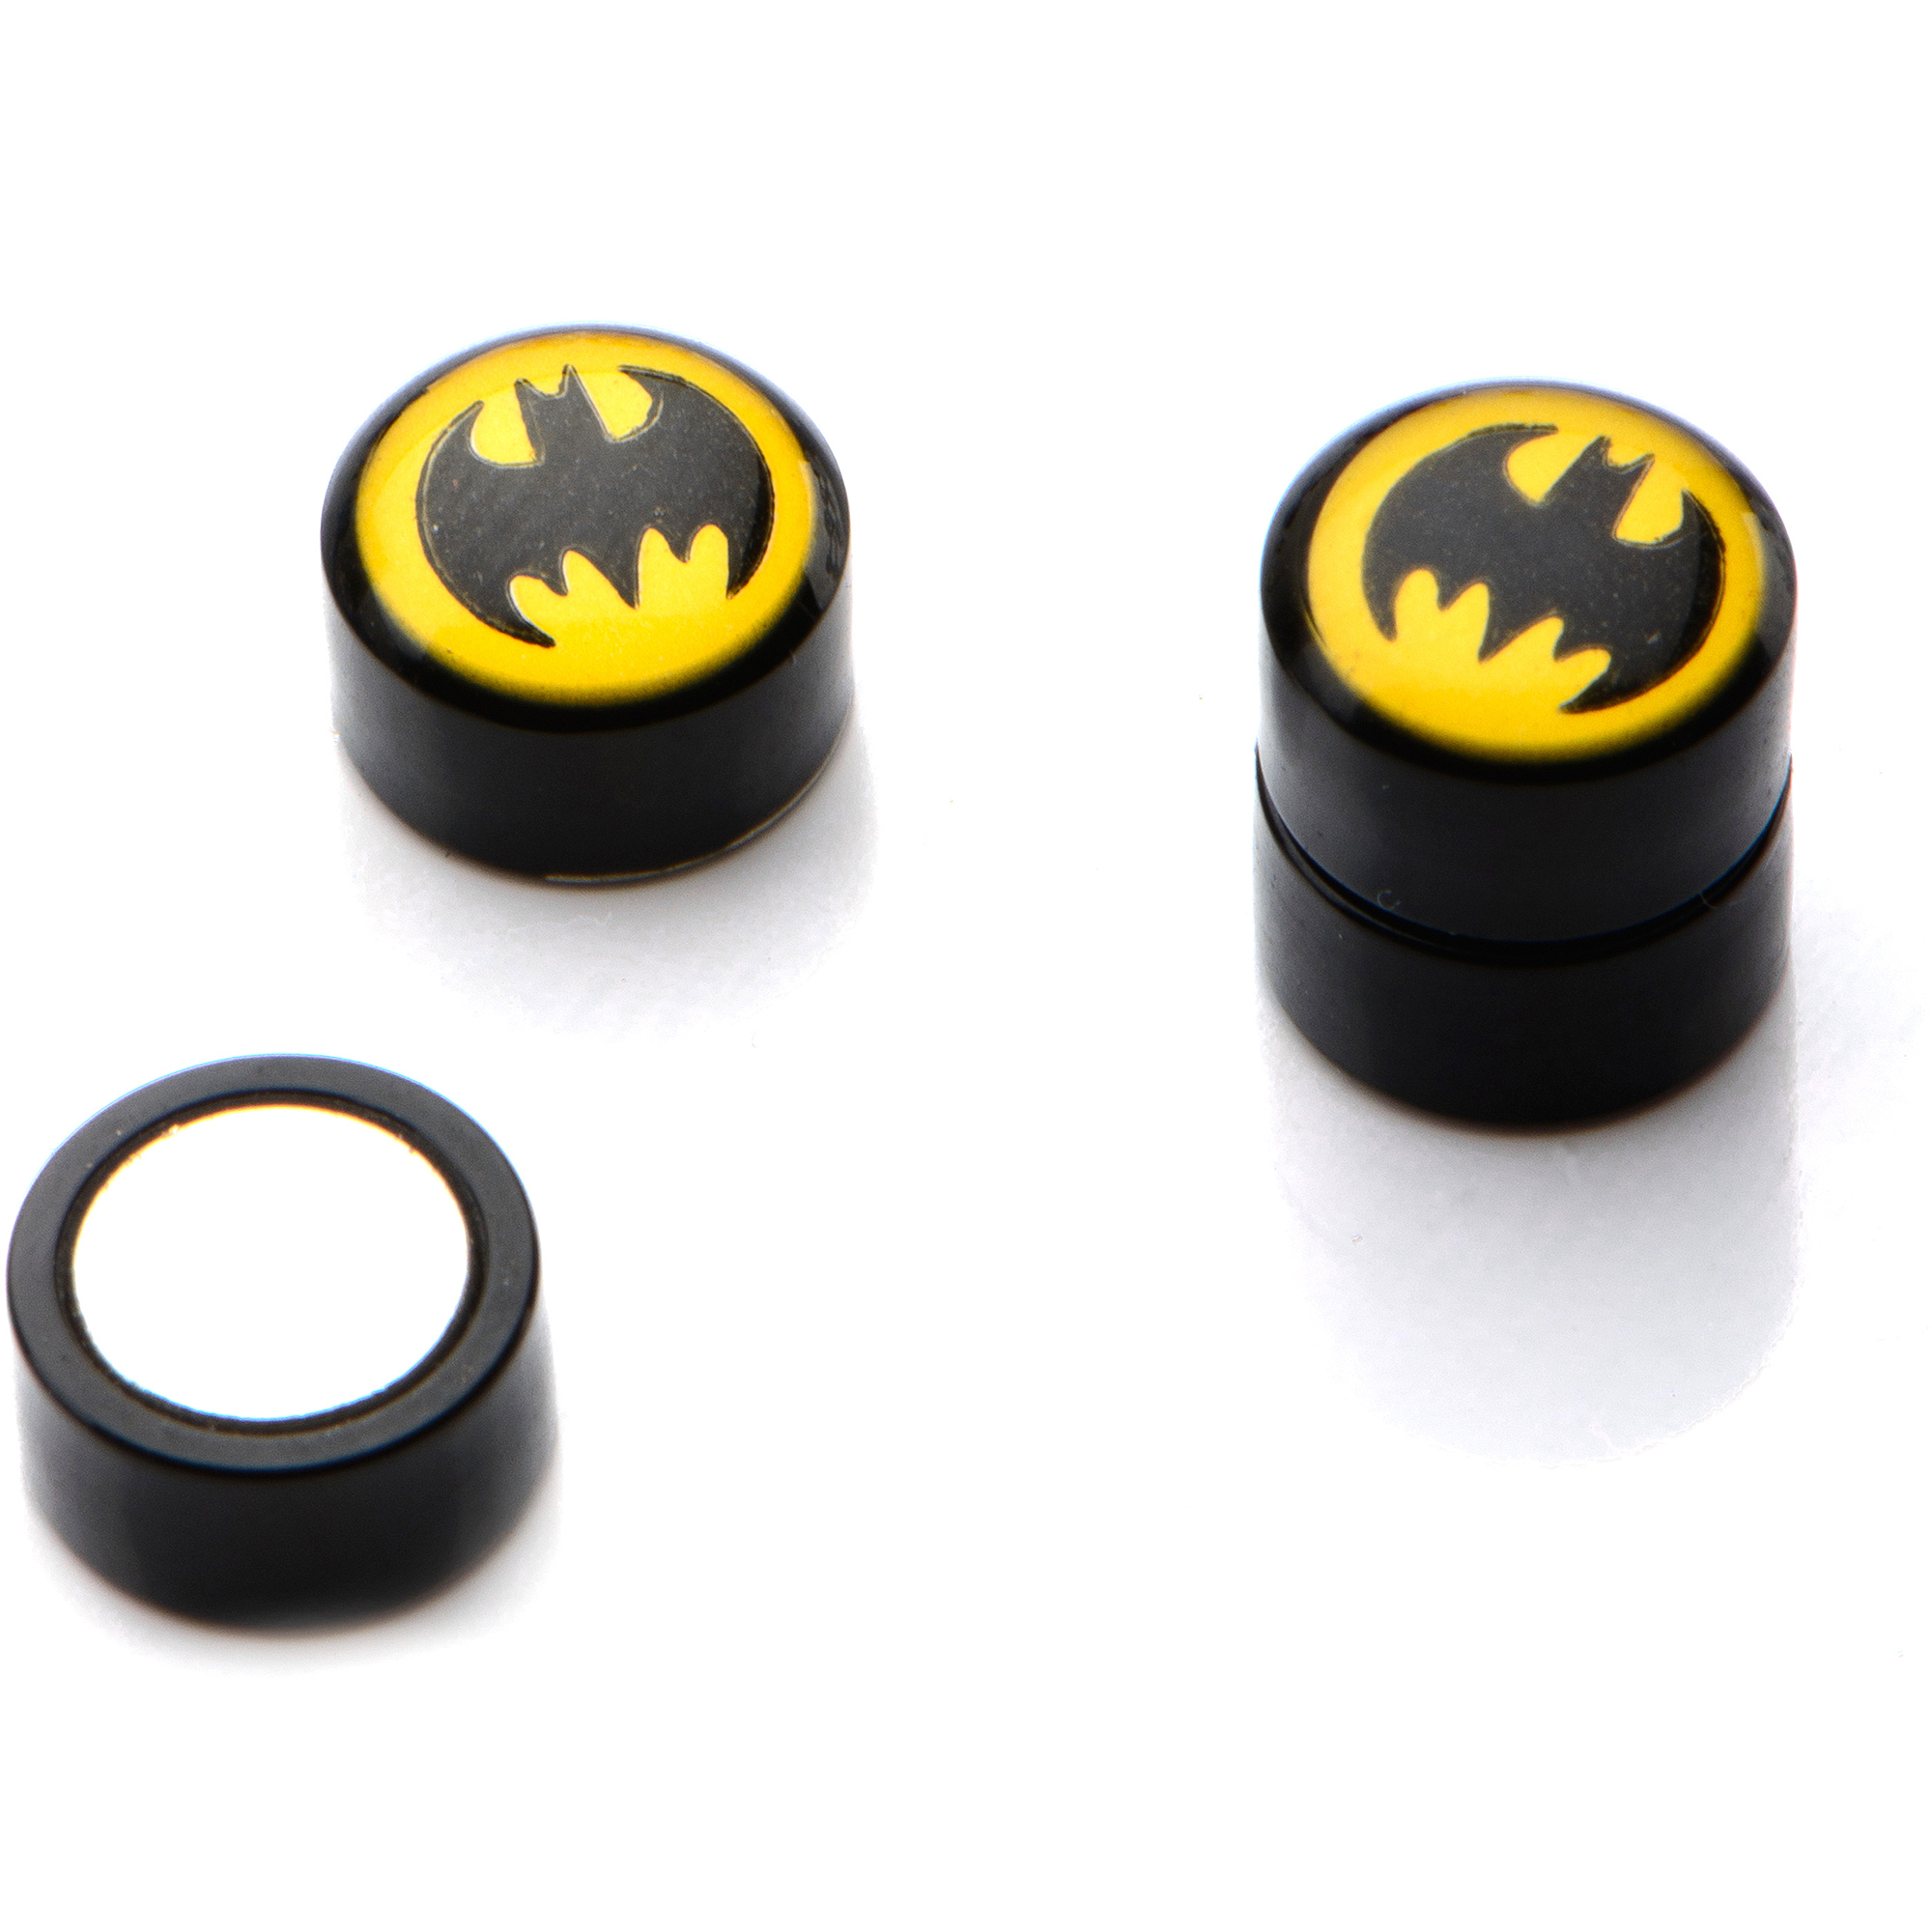 Officially Licensed DC Comics Body Jewelry Acrylic Magnetic Non-pierced Earrings with Yellow and Black Batman Logo